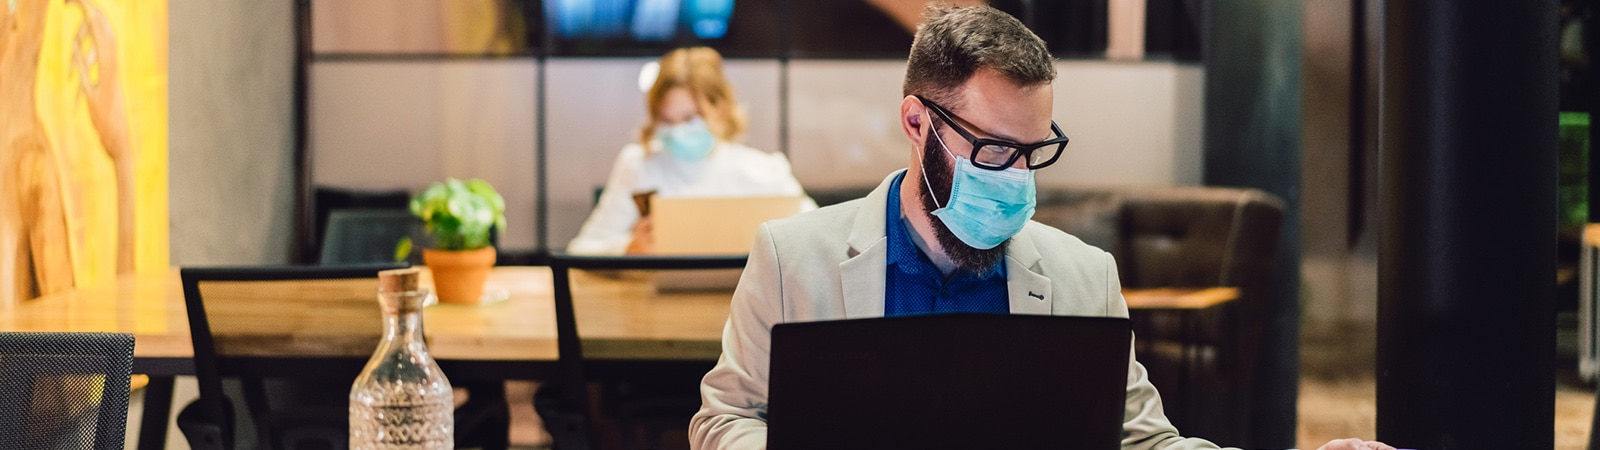 A man wearing a mask working in a social distanced office with his laptop